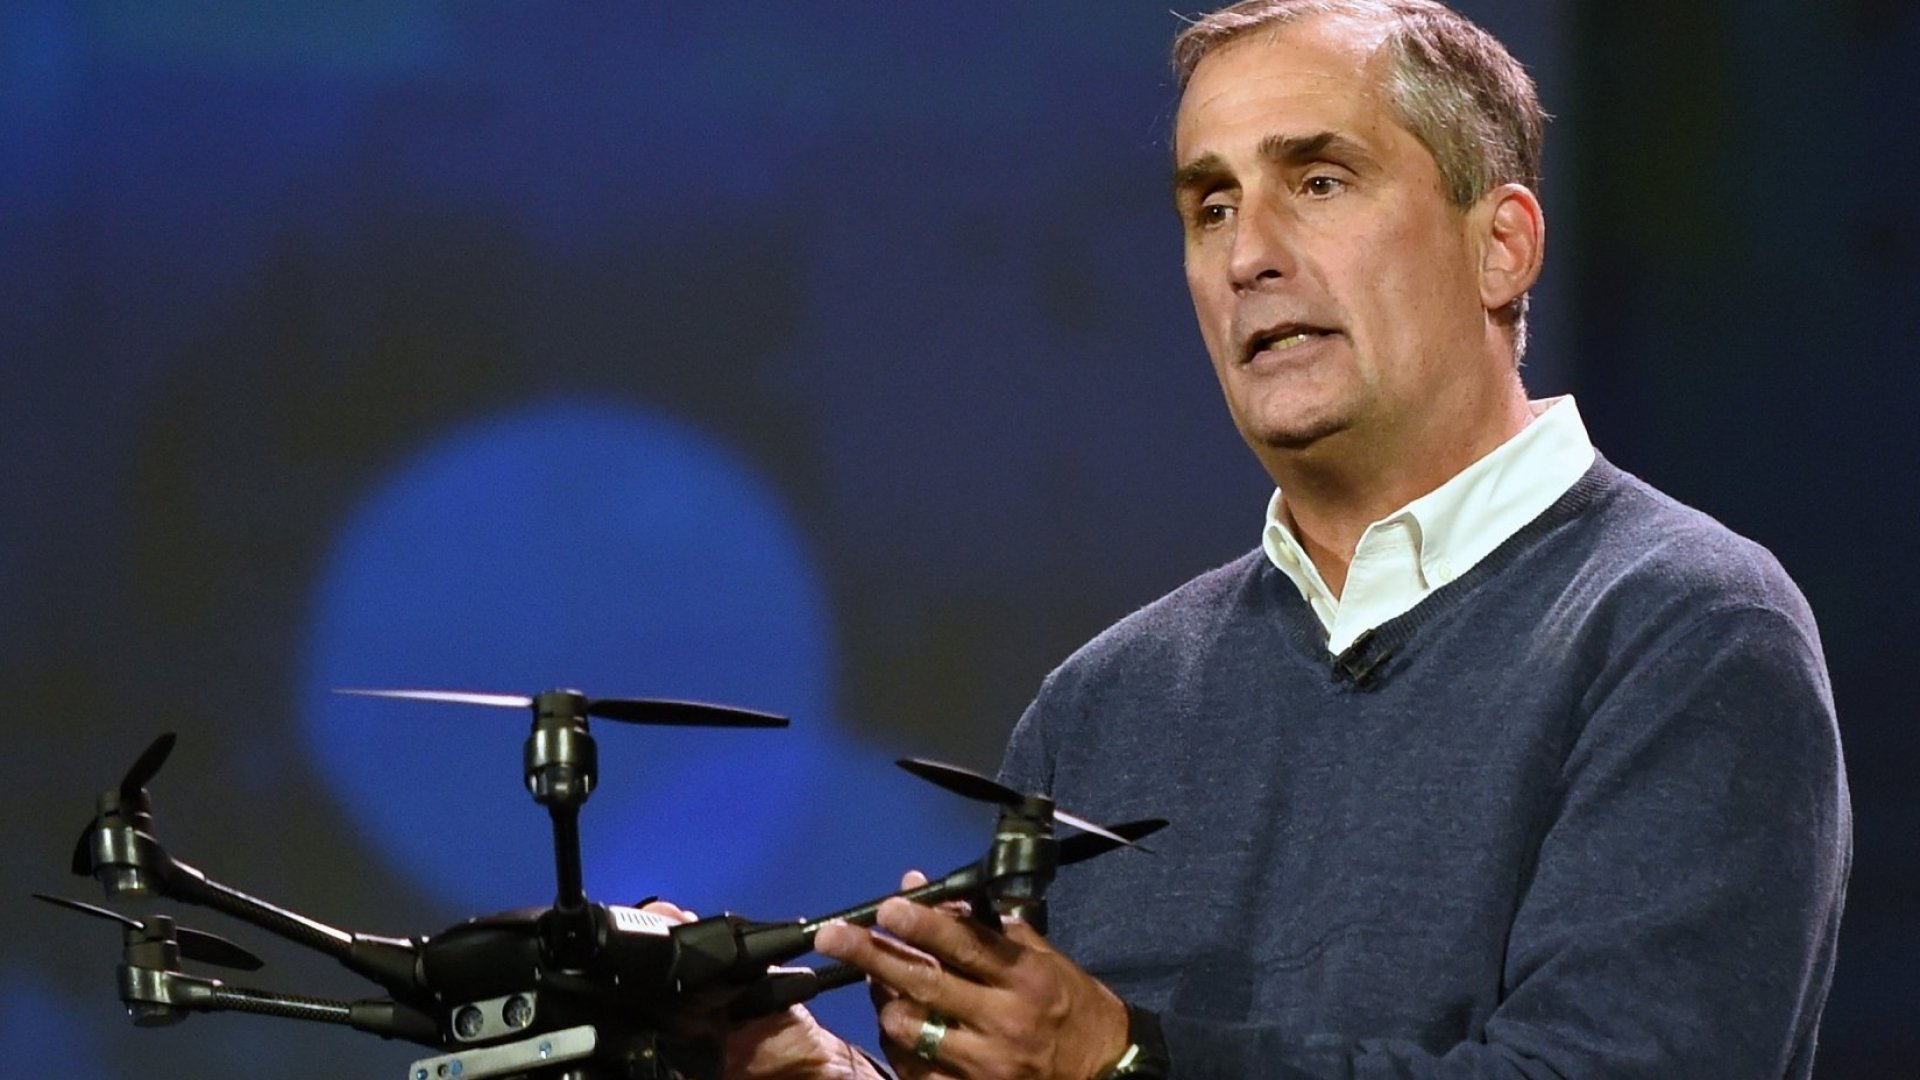 A Look at Intel's New Drone That Can Follow You in Real-Time